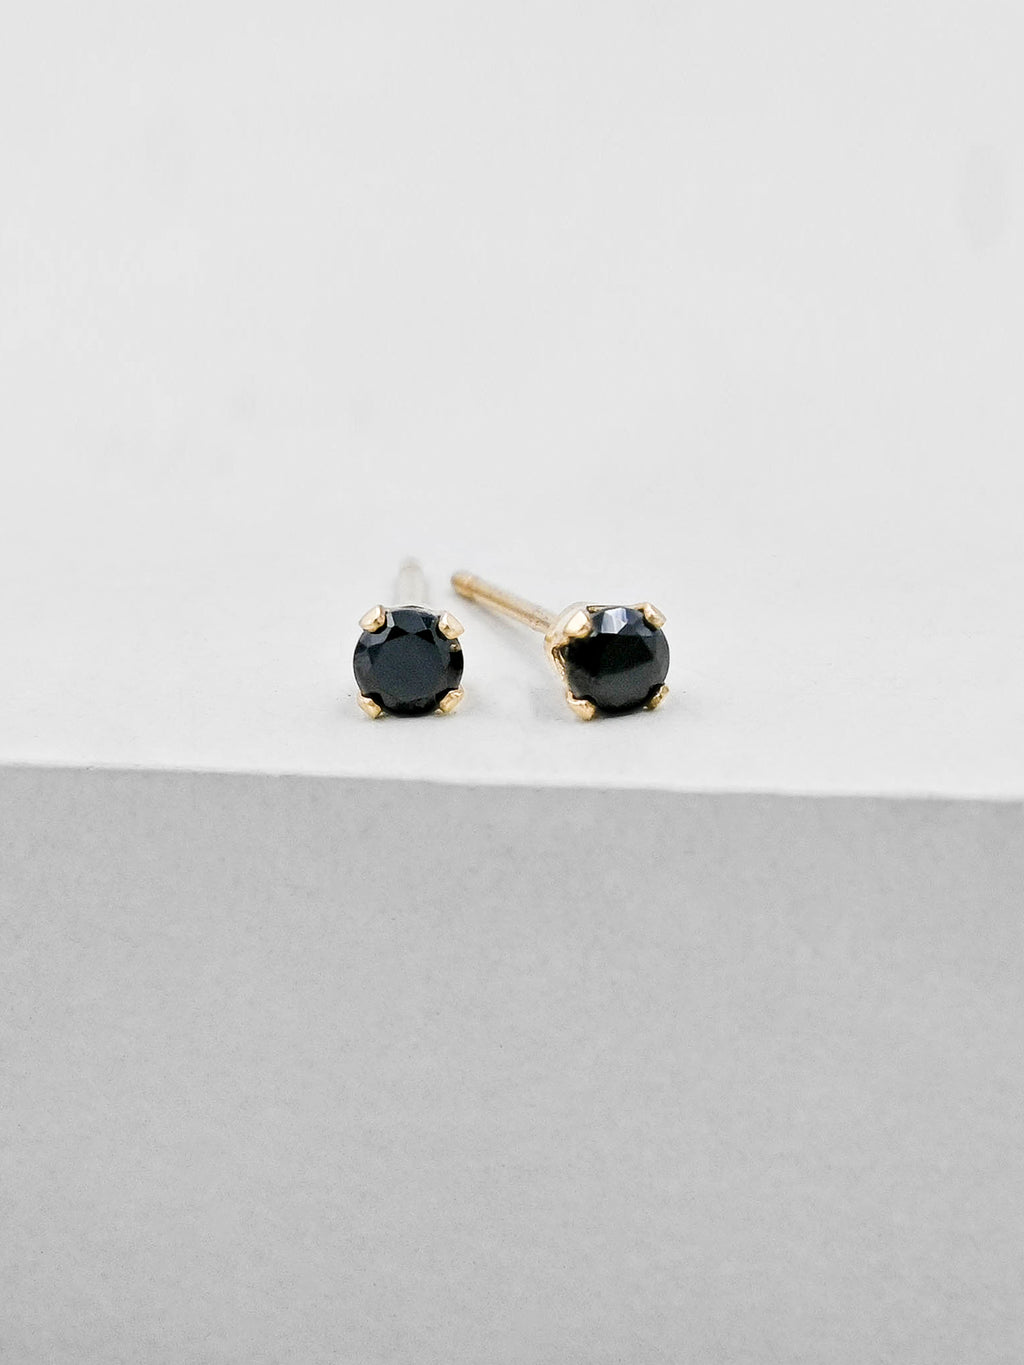 Black Round CZ Solitaire Gold Plated Solitaire Stud Earrings by The Faint Hearted Jewelry